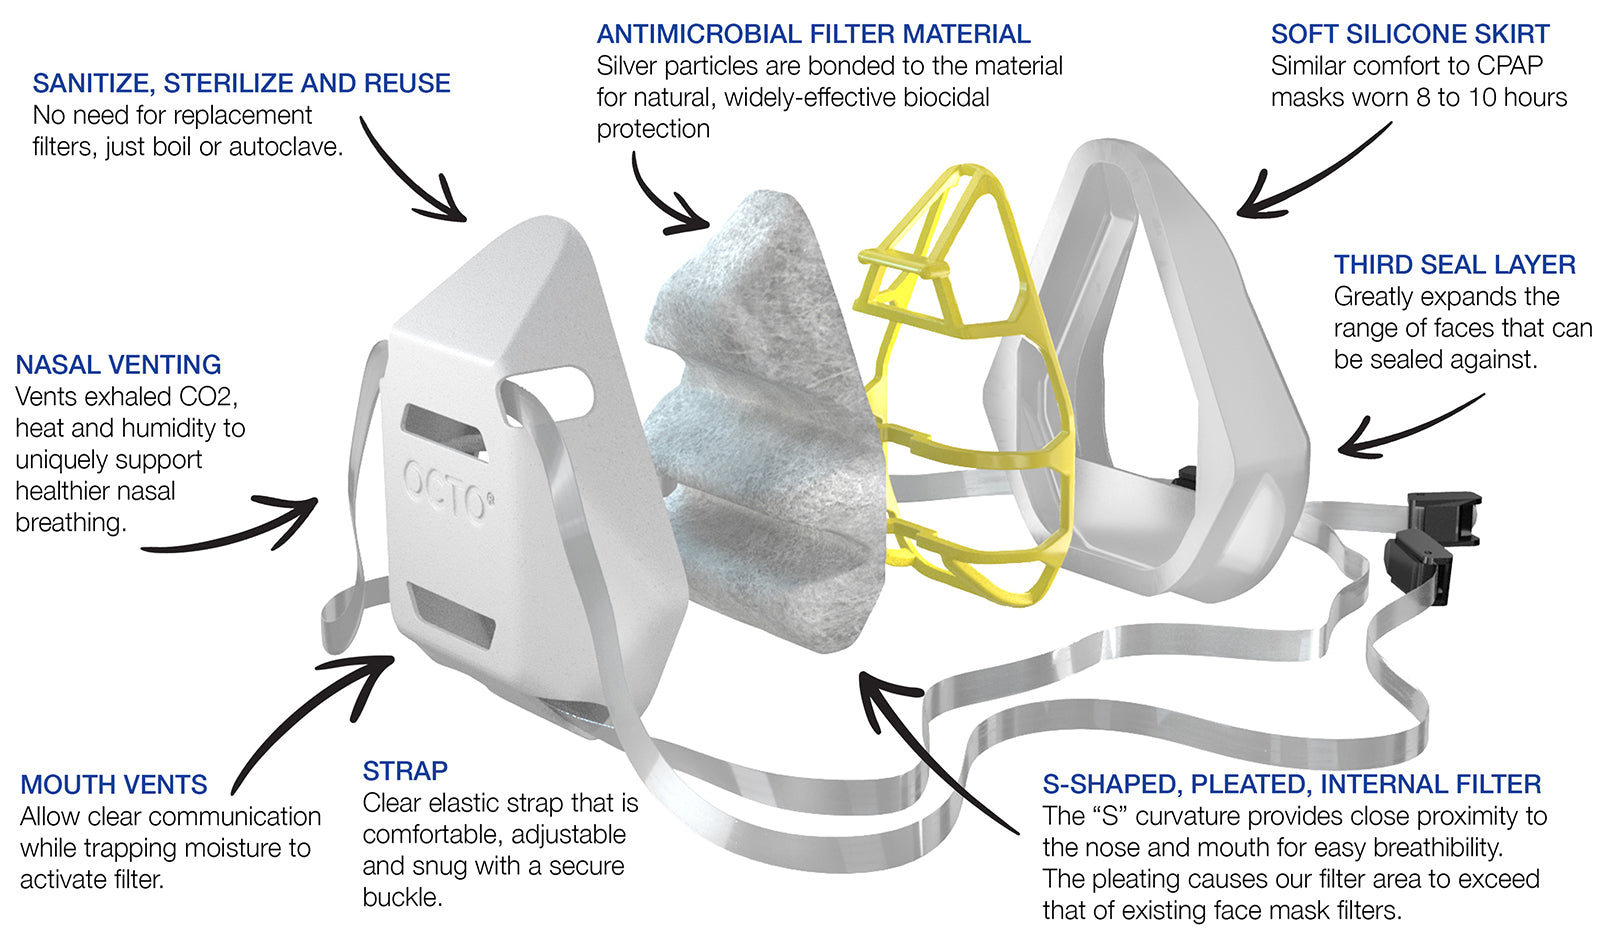 OCTO Respirator Mask 1.5 Exploded View